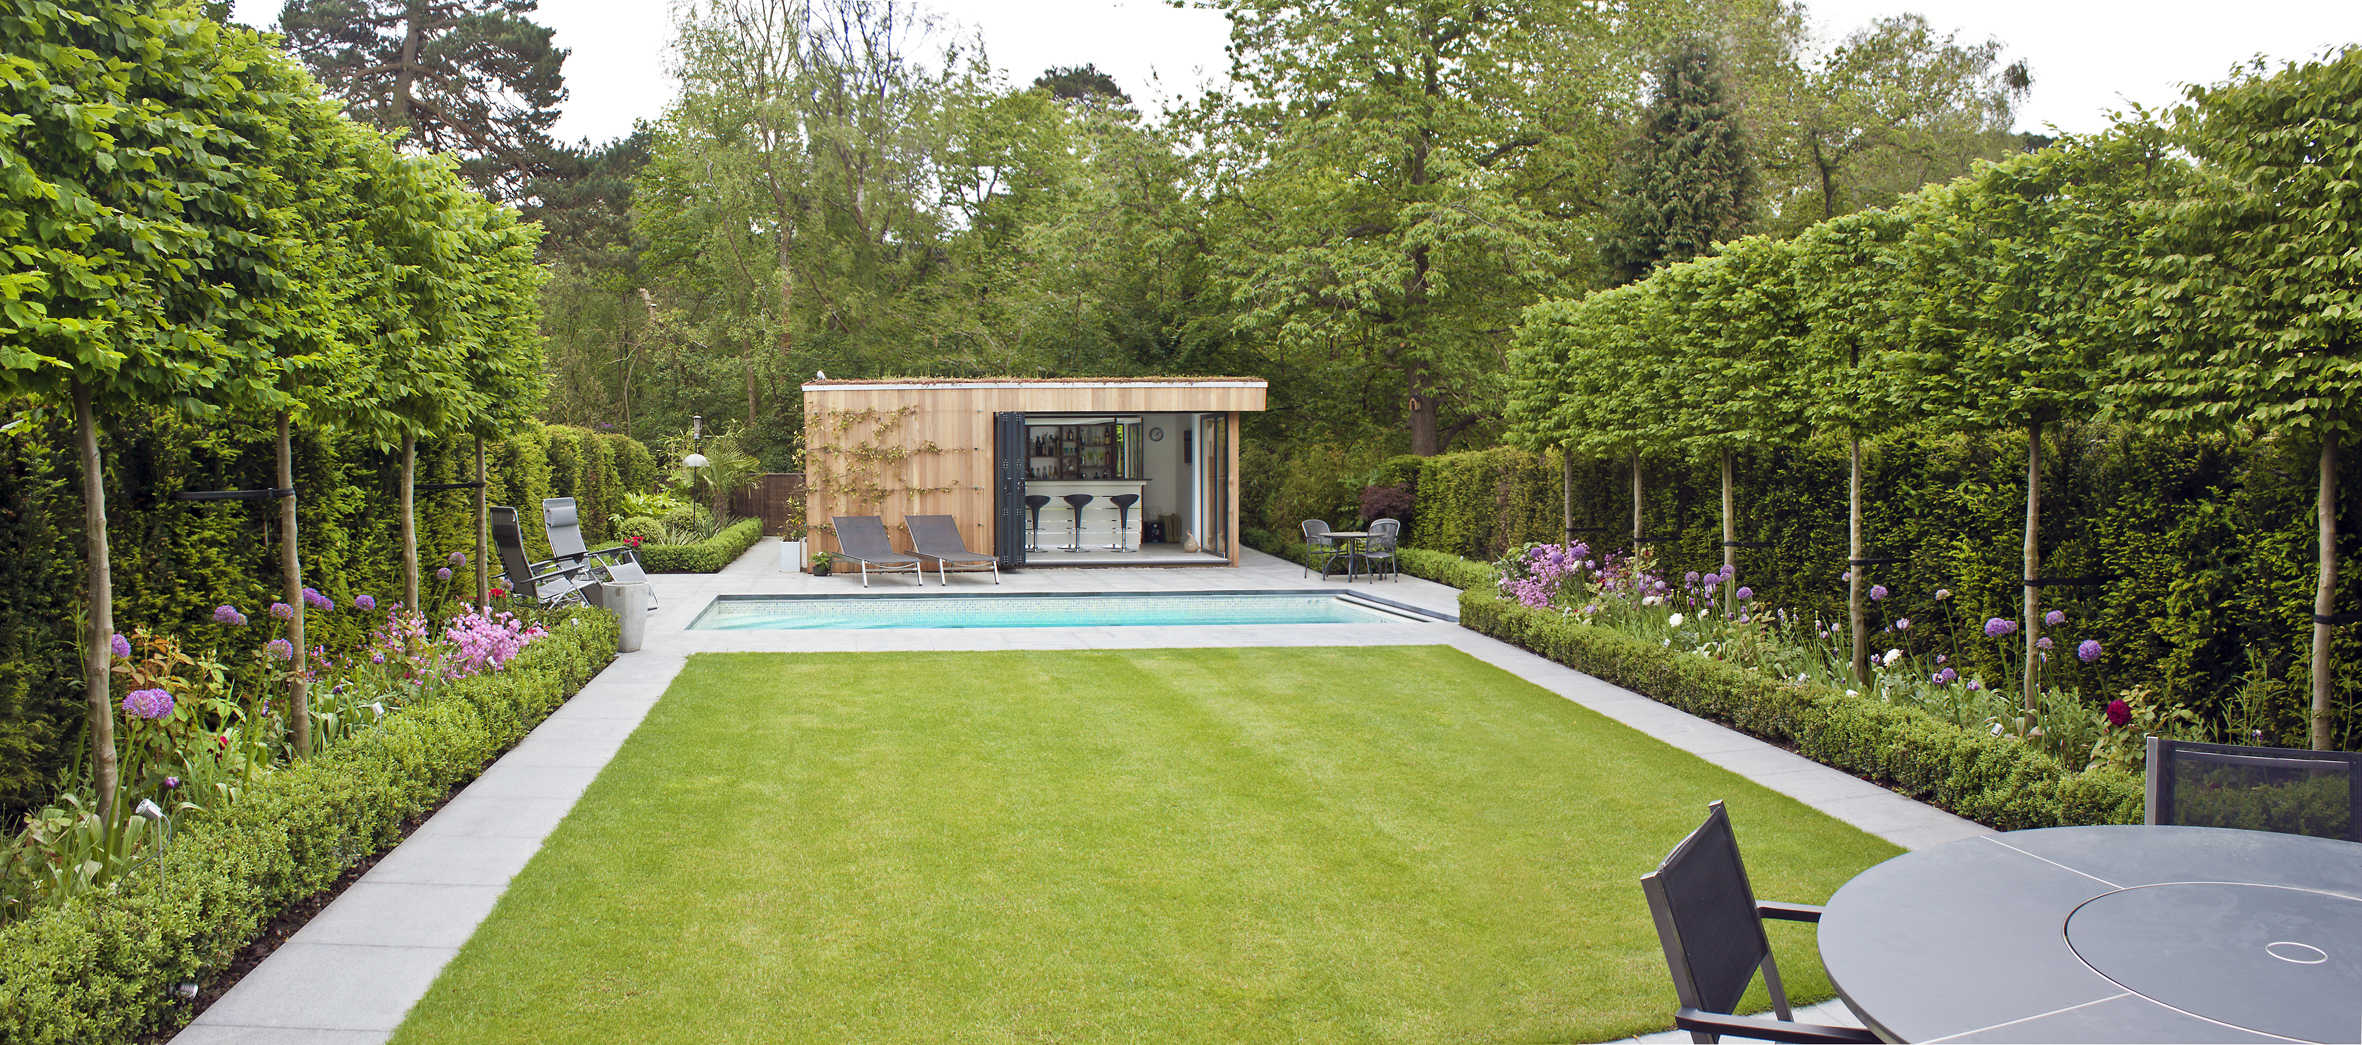 Pleached Hornbeams used in contemporary landscape